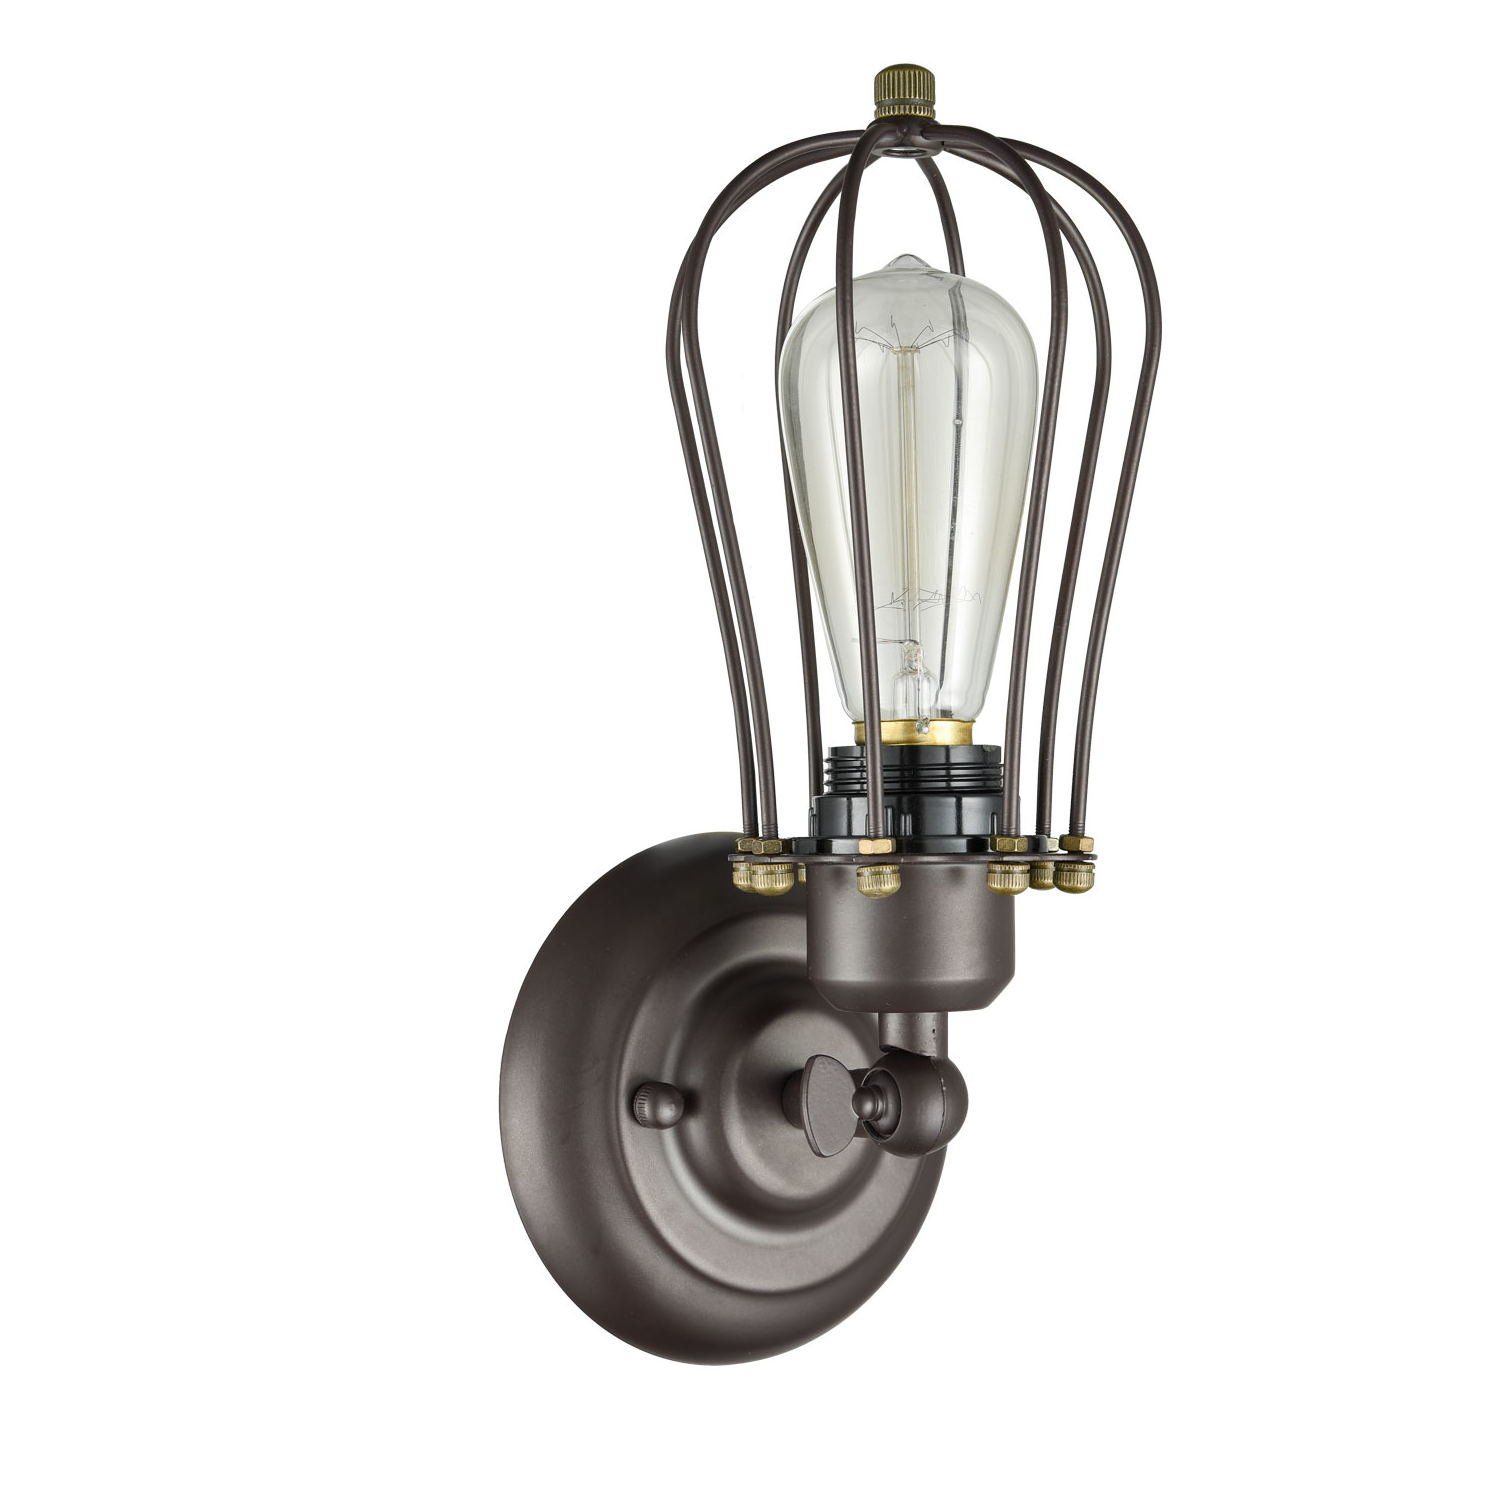 Chloe loft industrial 2 light oil rubbed bronze wall sconce free - Claxy Ecopower Vintage Style Industrial Oil Rubbed Bronze Mini Wire Cage Wall Sconce Amazon Com